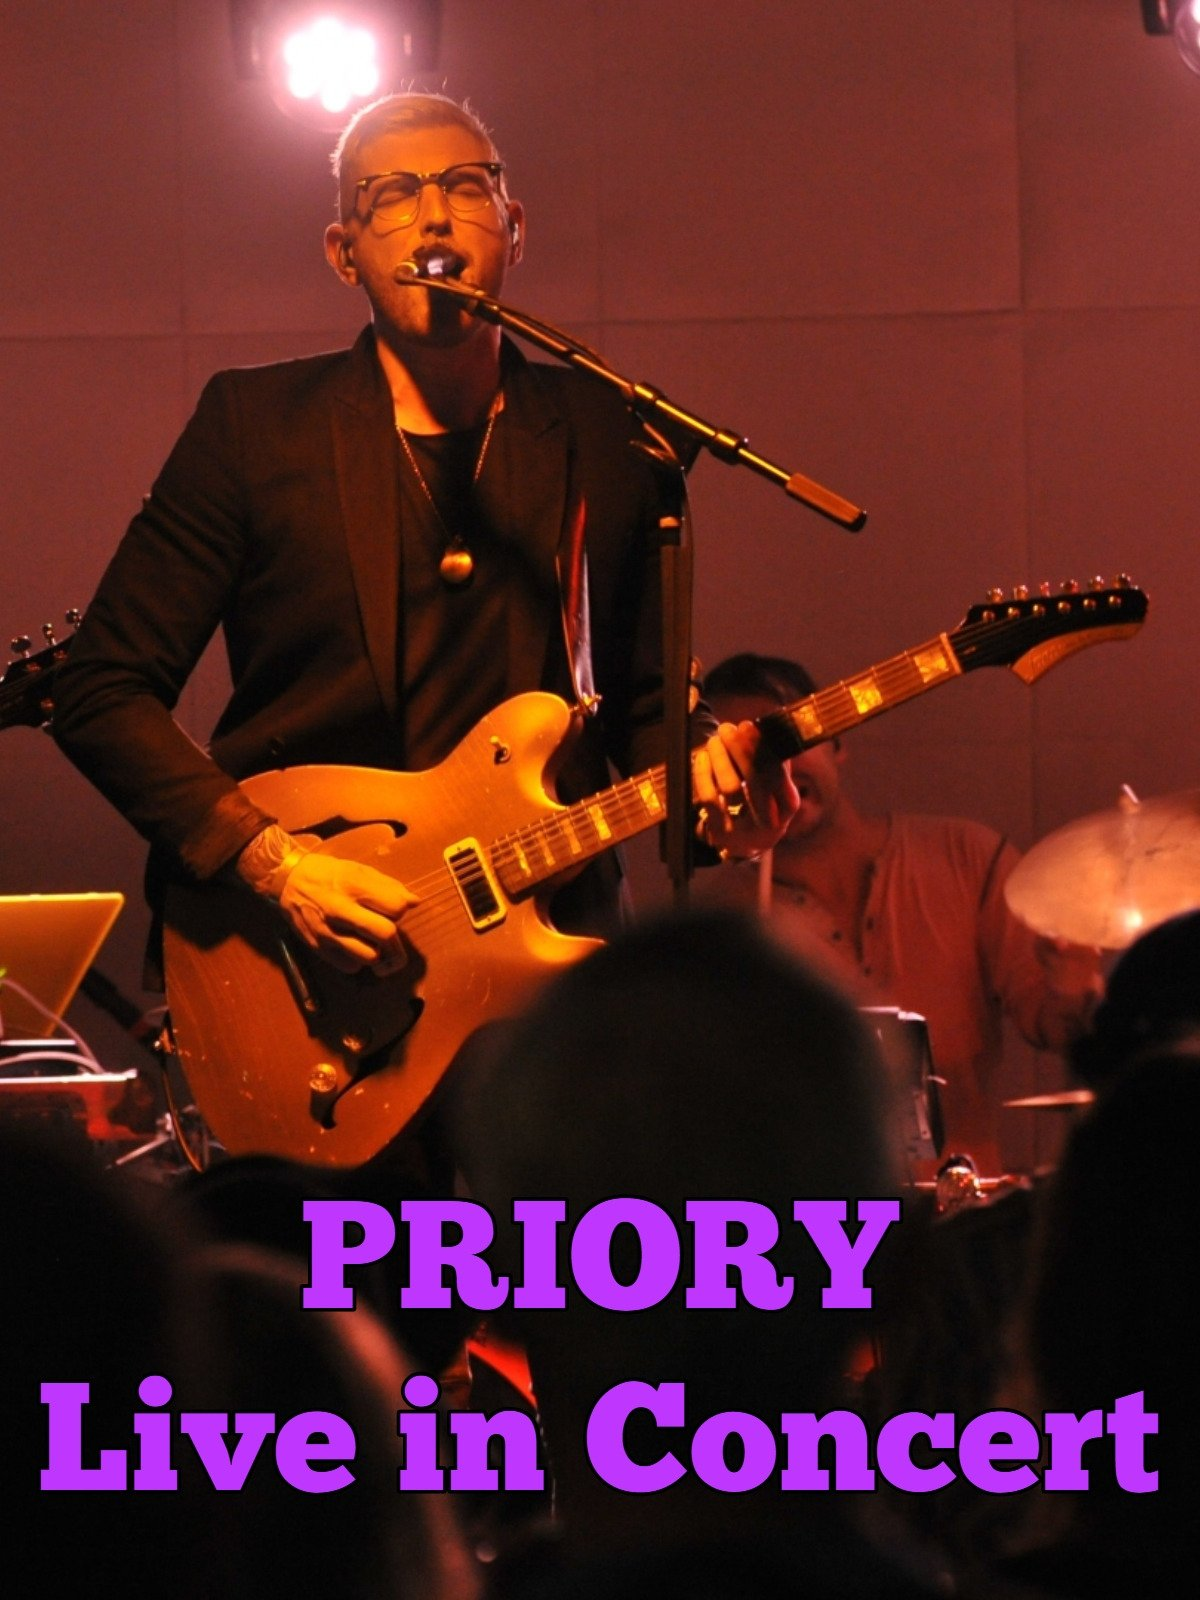 Priory: Live in Concert on Amazon Prime Video UK